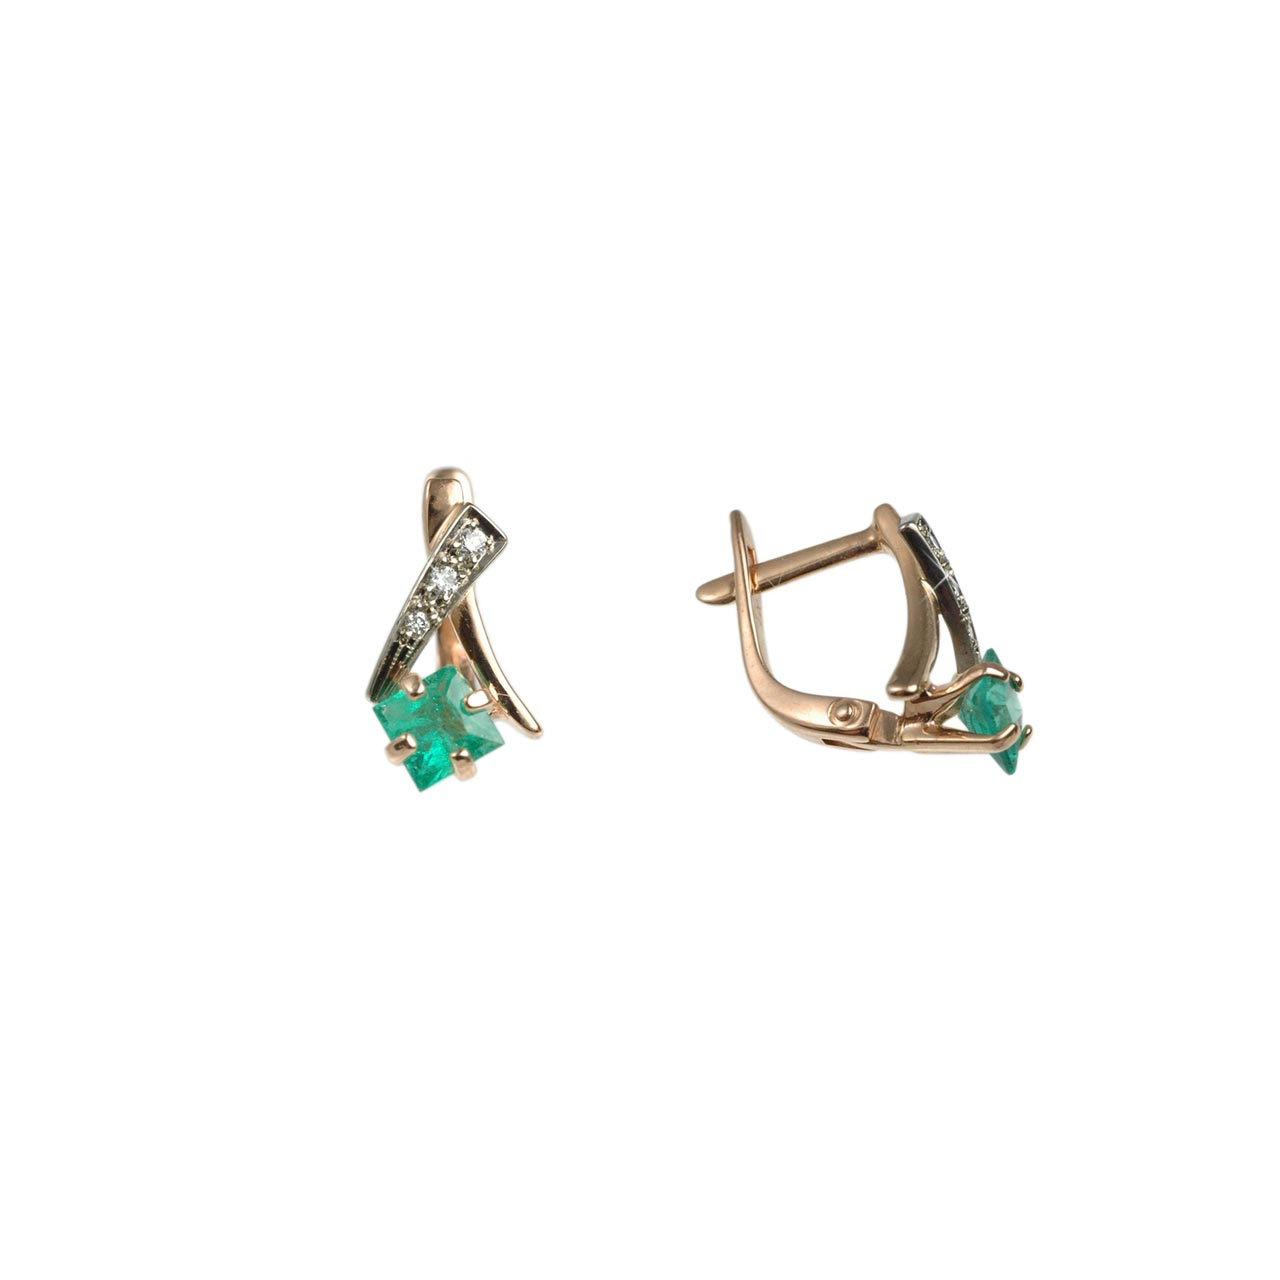 Emerald Leverback Earrings